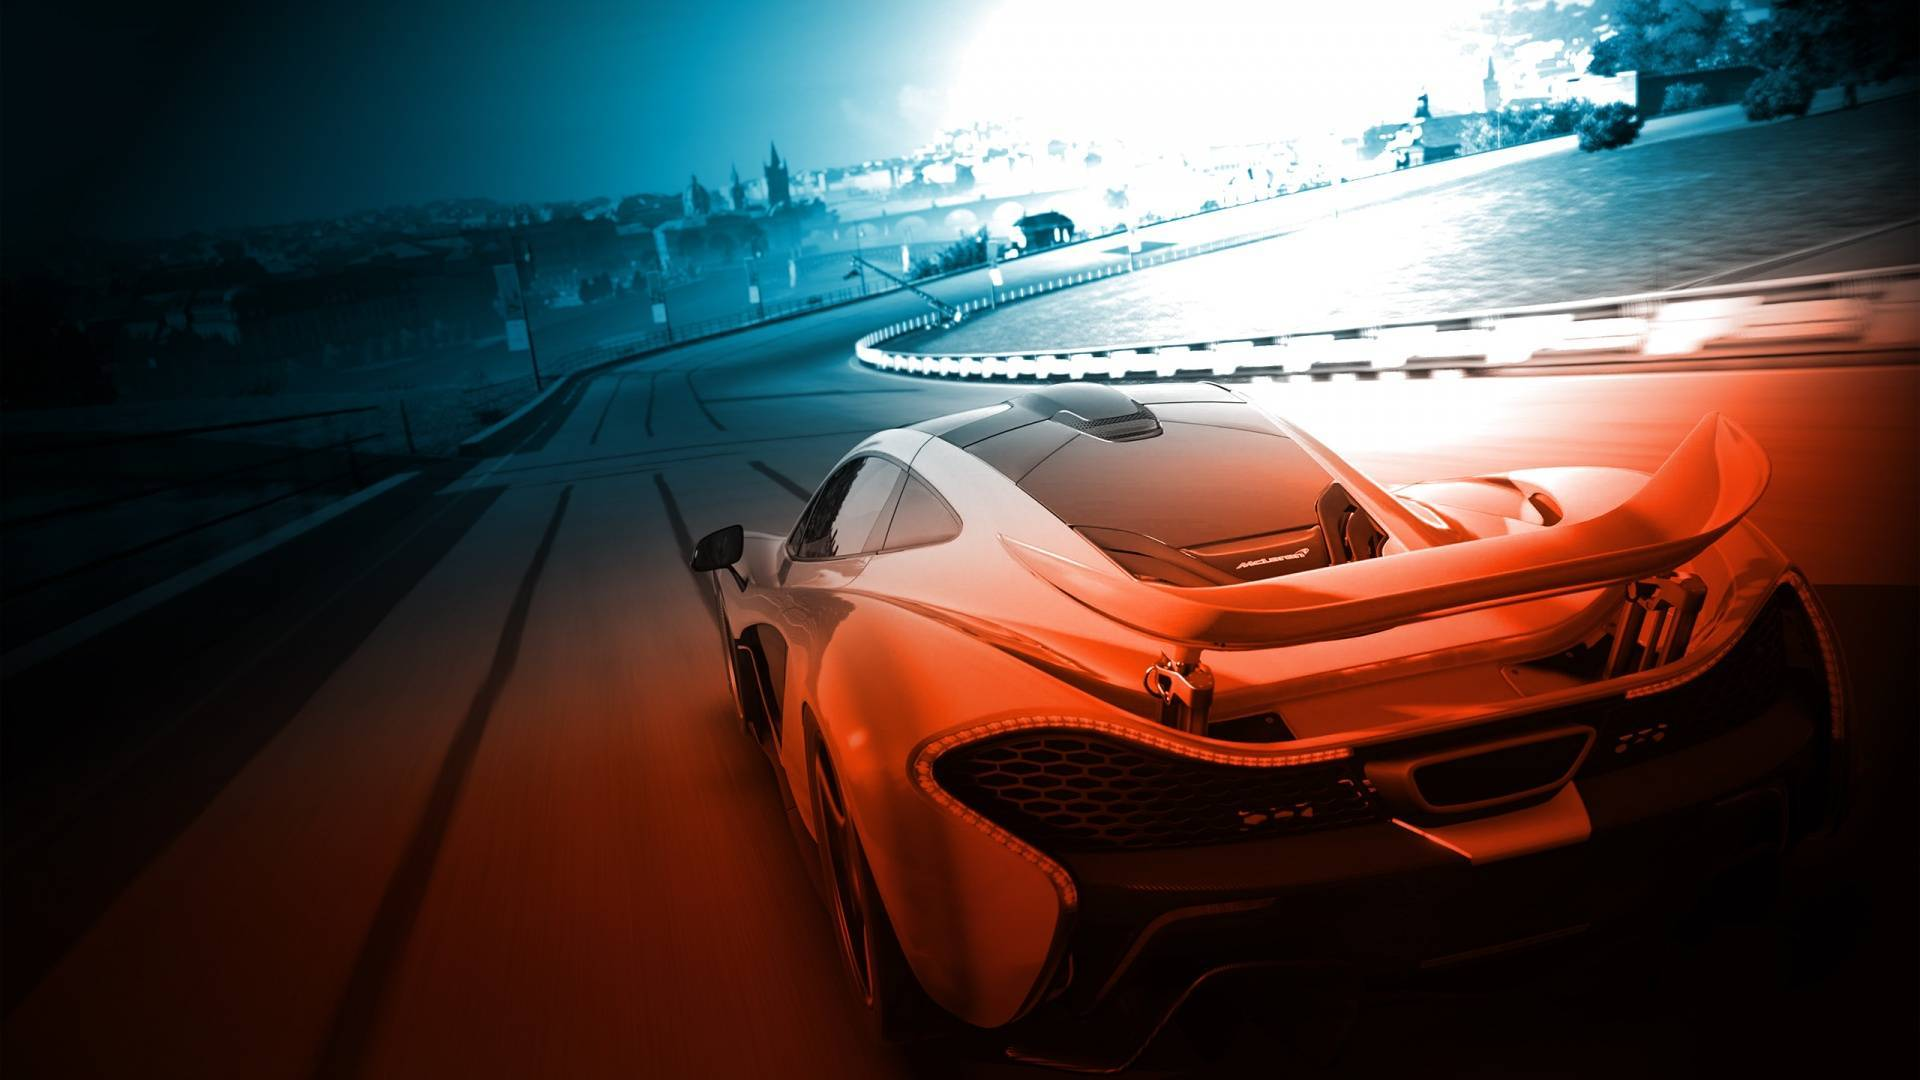 Cool cars wallpaper Group (59+)